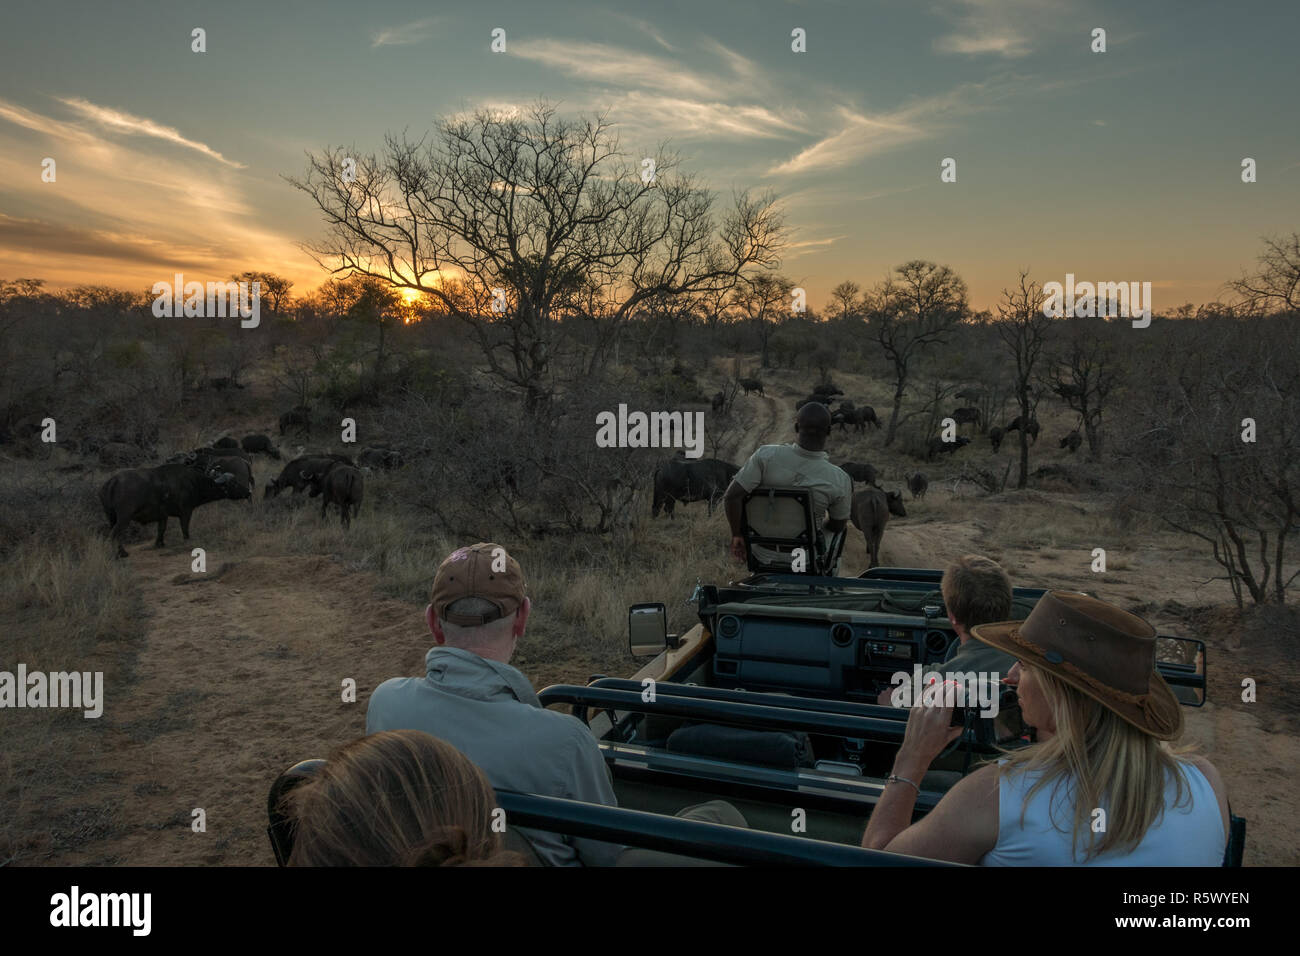 Tourists on safari in a jeep watching a herd of buffalo at sunset in the bushveld of the Greater Kruger National Park, South Africa - Stock Image